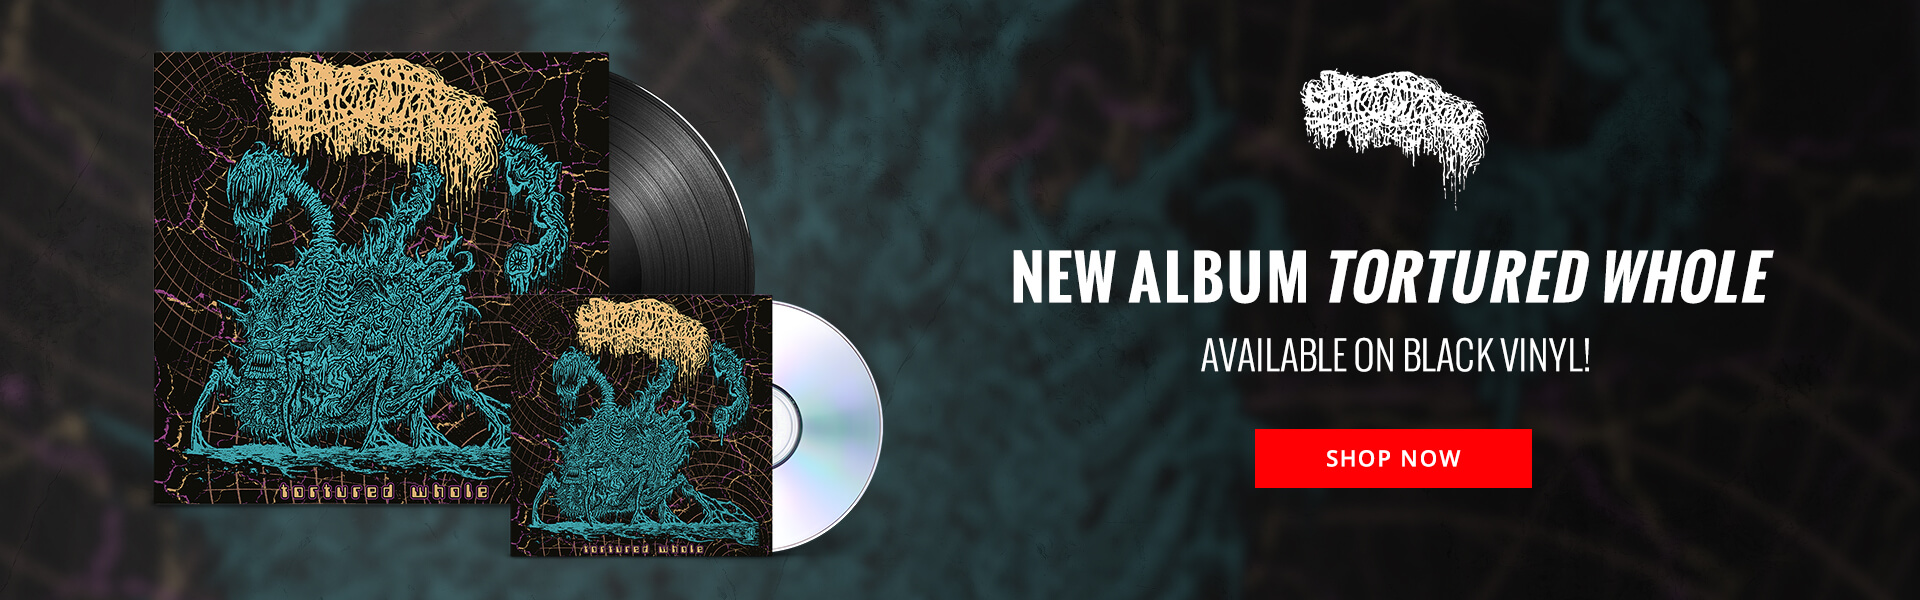 Sanguisugabogg's new album Tortured Whole available on black vinyl! Shop Now.